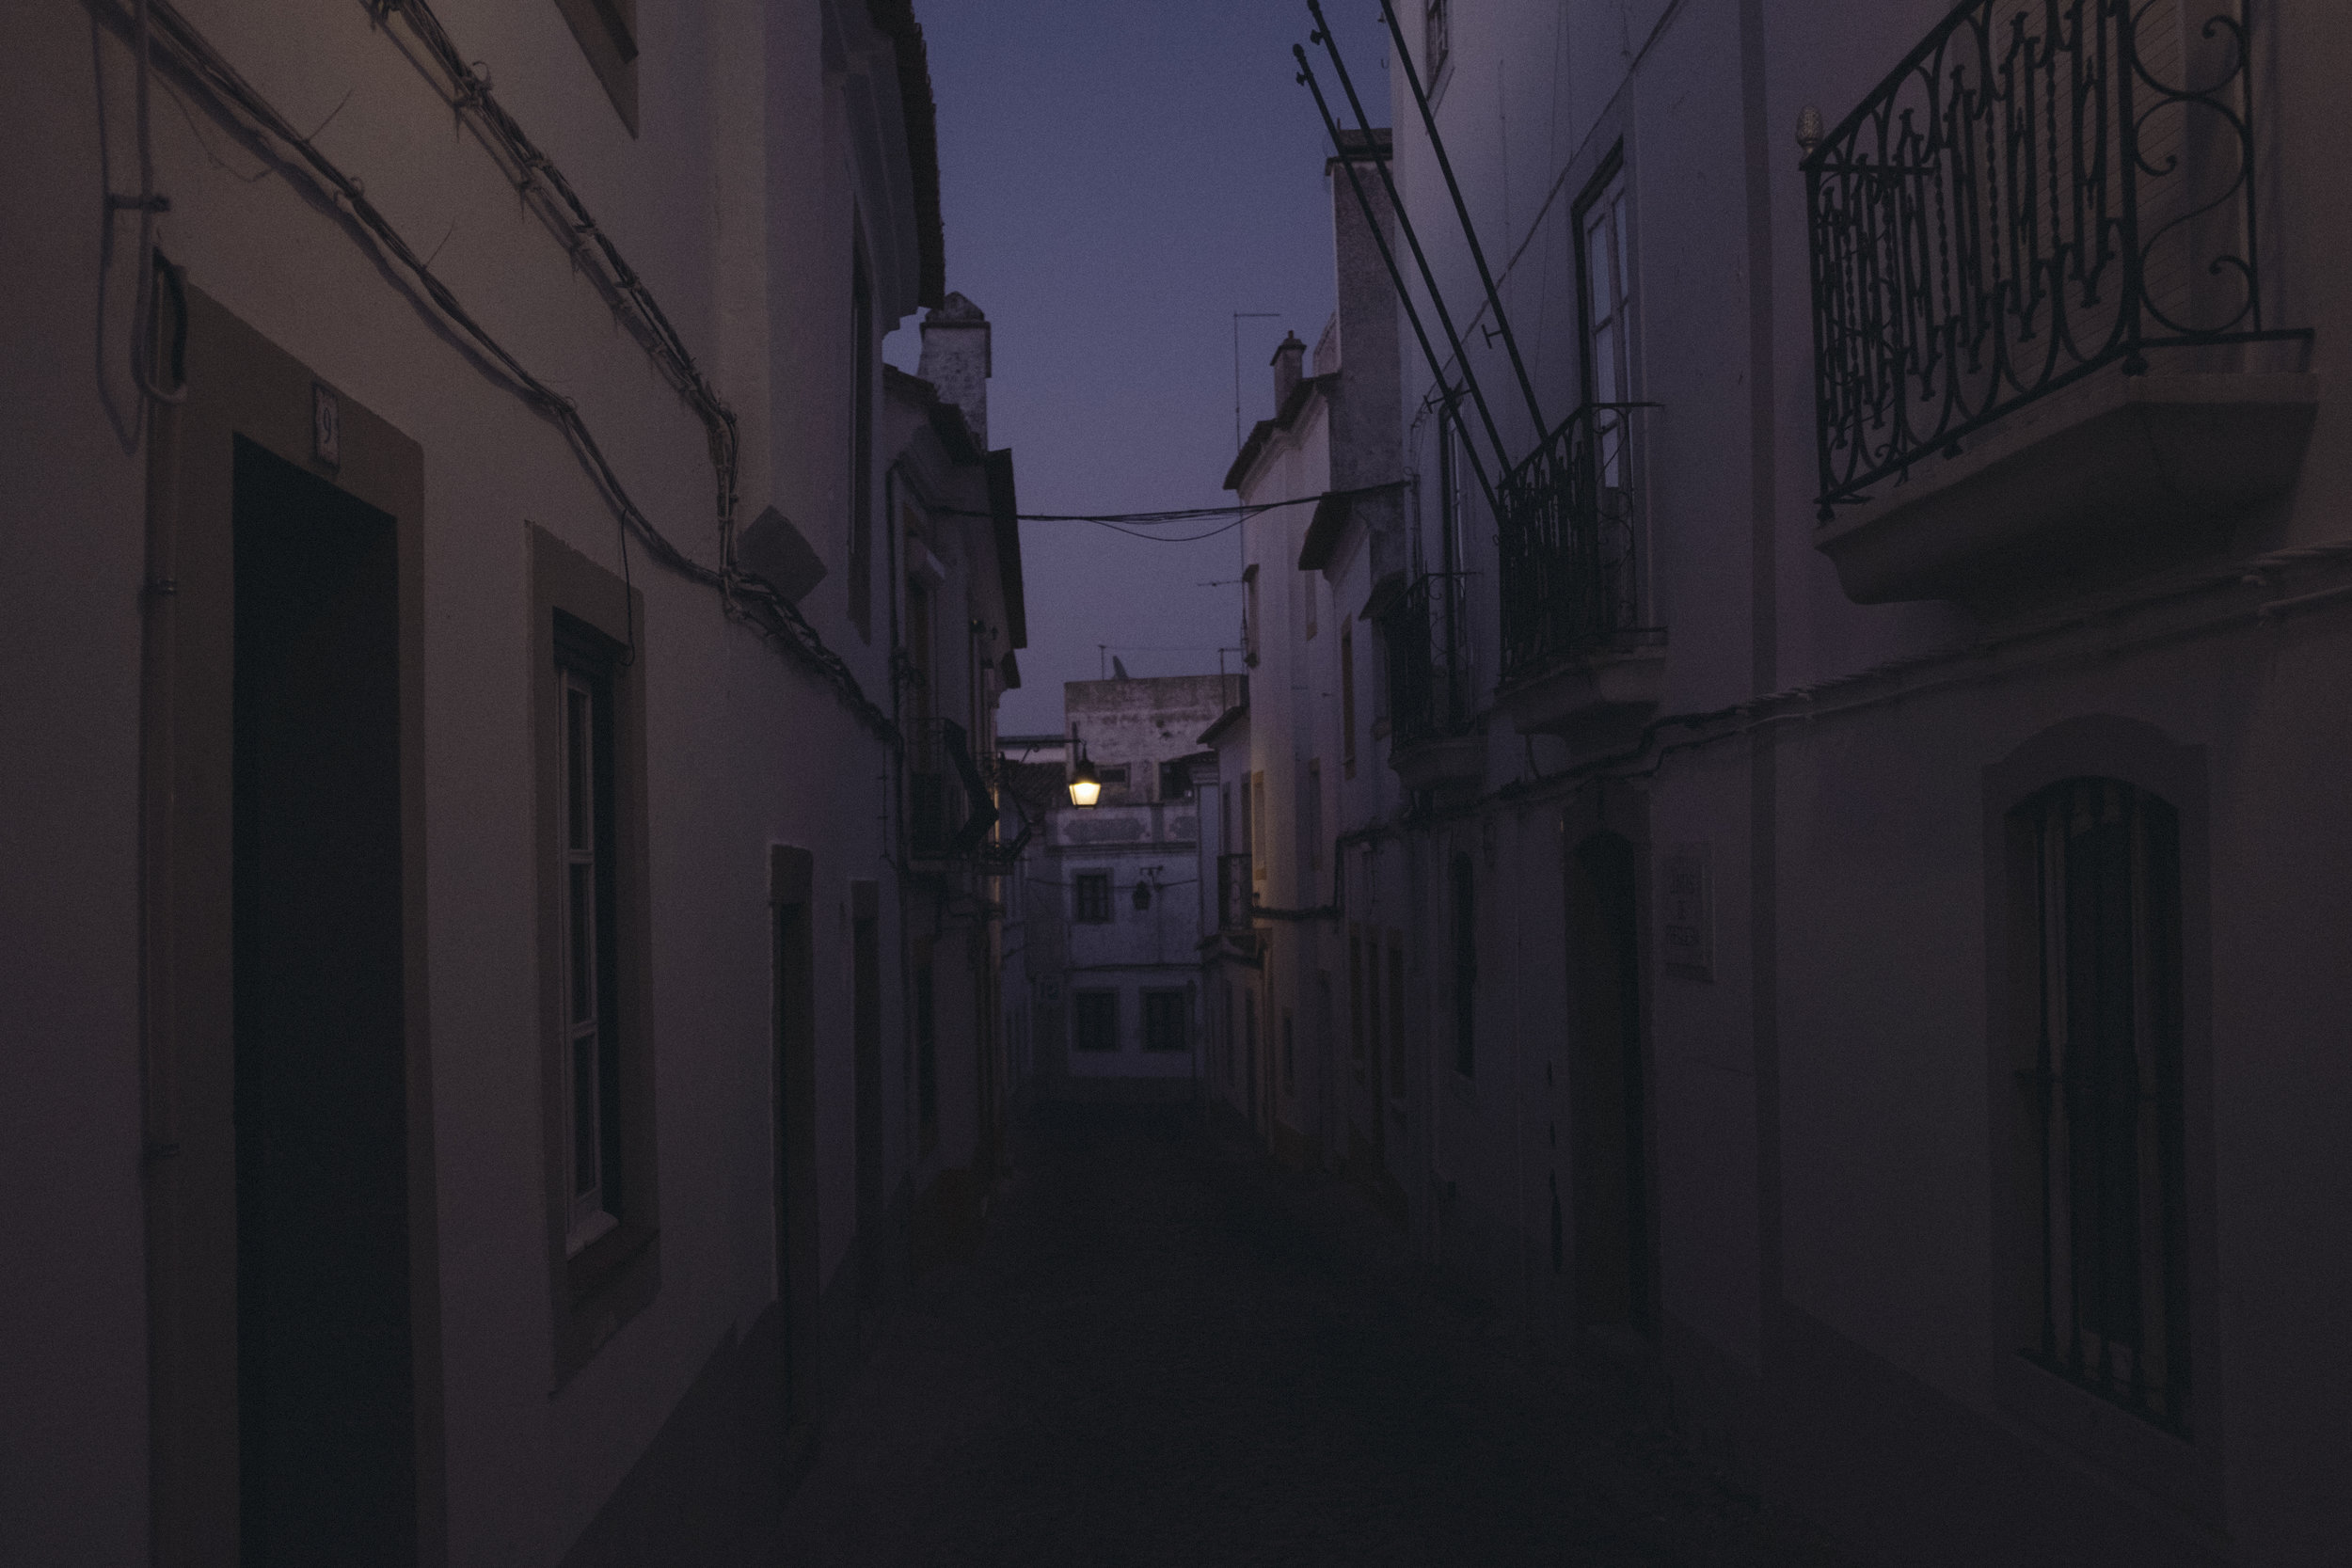 Evora, Portugal - July 2017